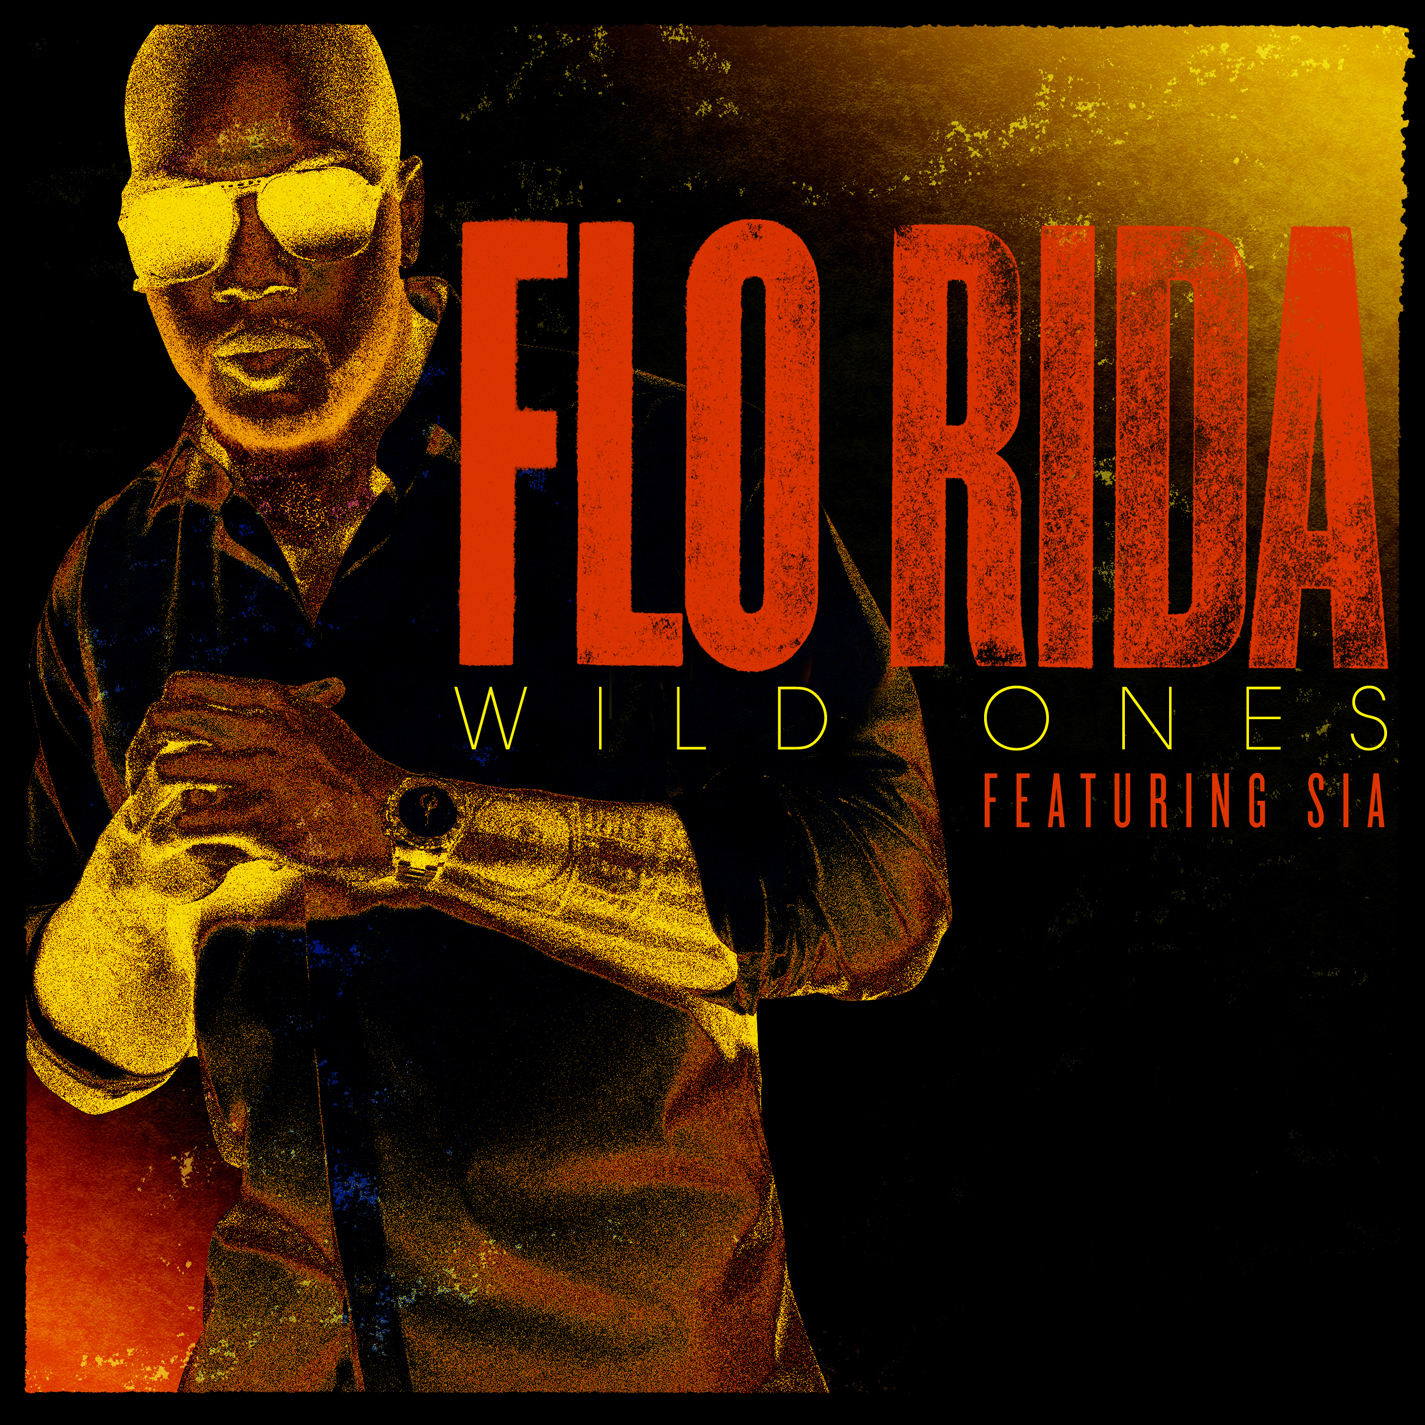 I Am Rider Song Mp3: 01 FLO RIDA WILD ONES 0 Download Music Mp3 For Free